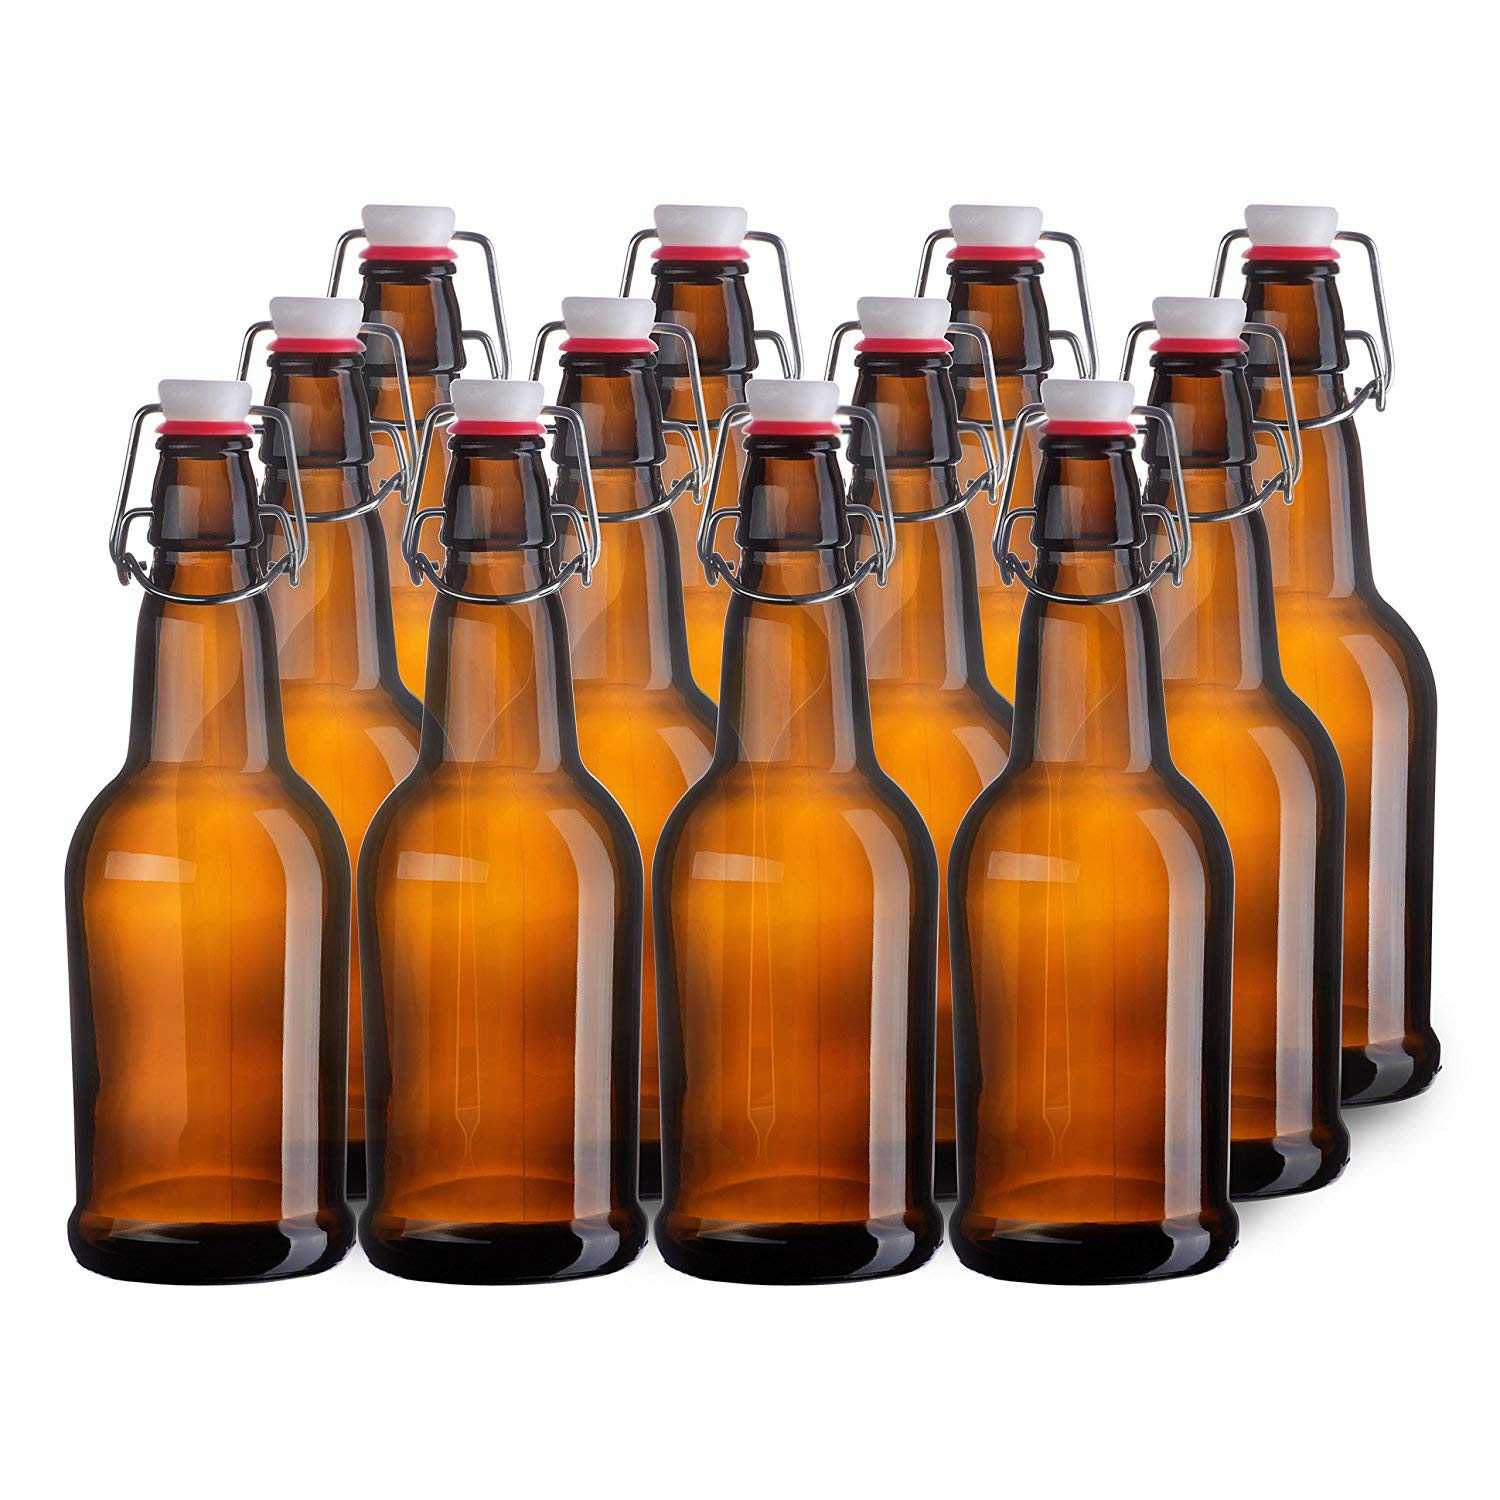 EZ Cap 500ml Flip-Top Home Brew Beer Bottles - Amber (Case of 12) by Kegco